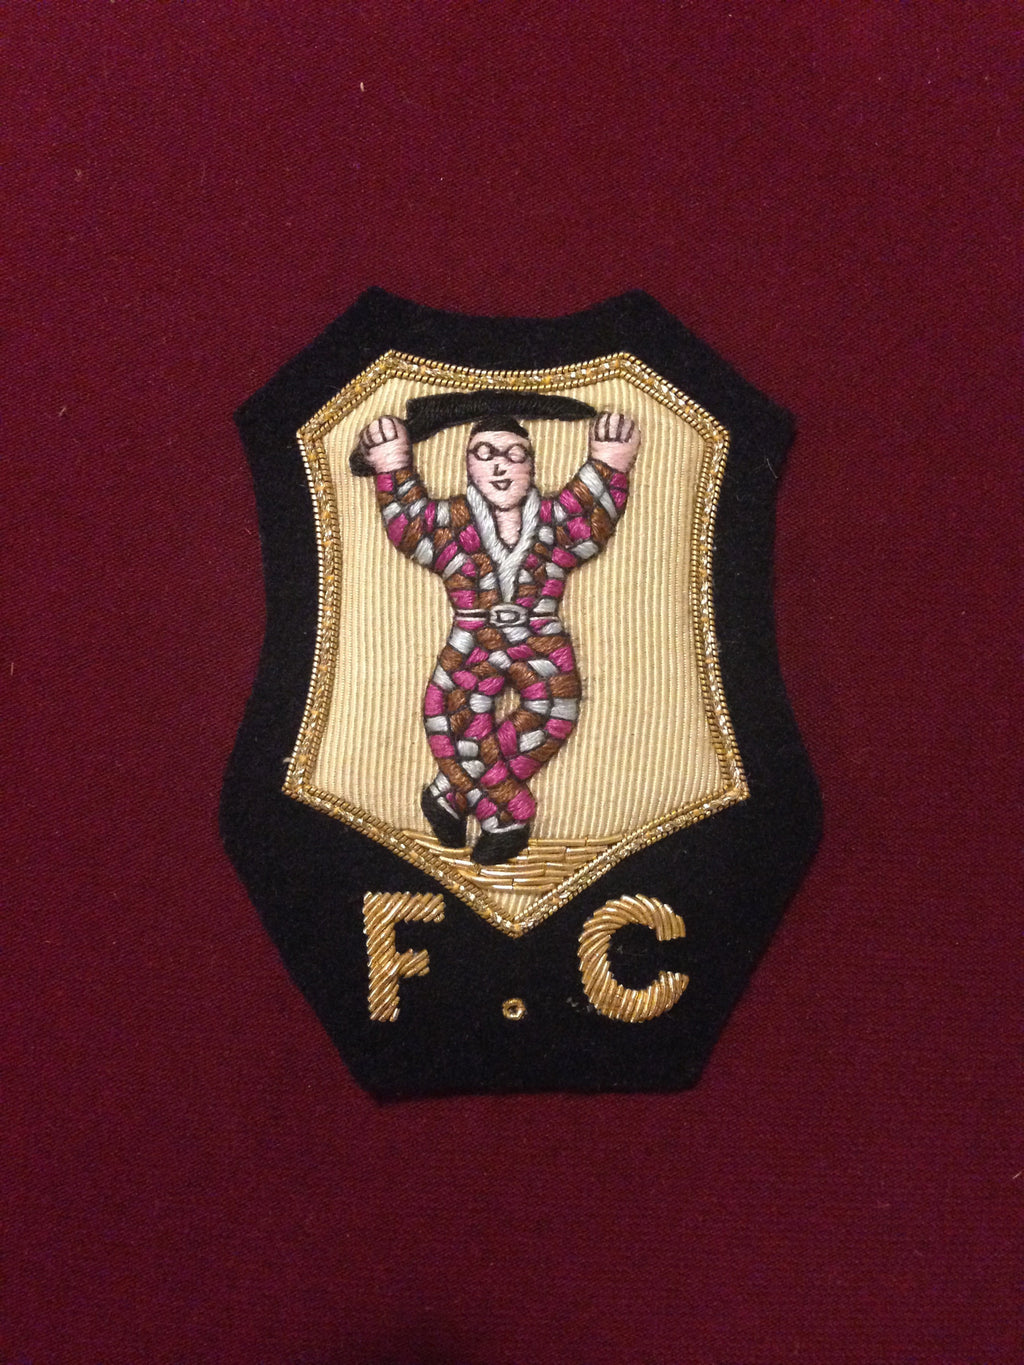 Harlequins Football Club Blazer Badge